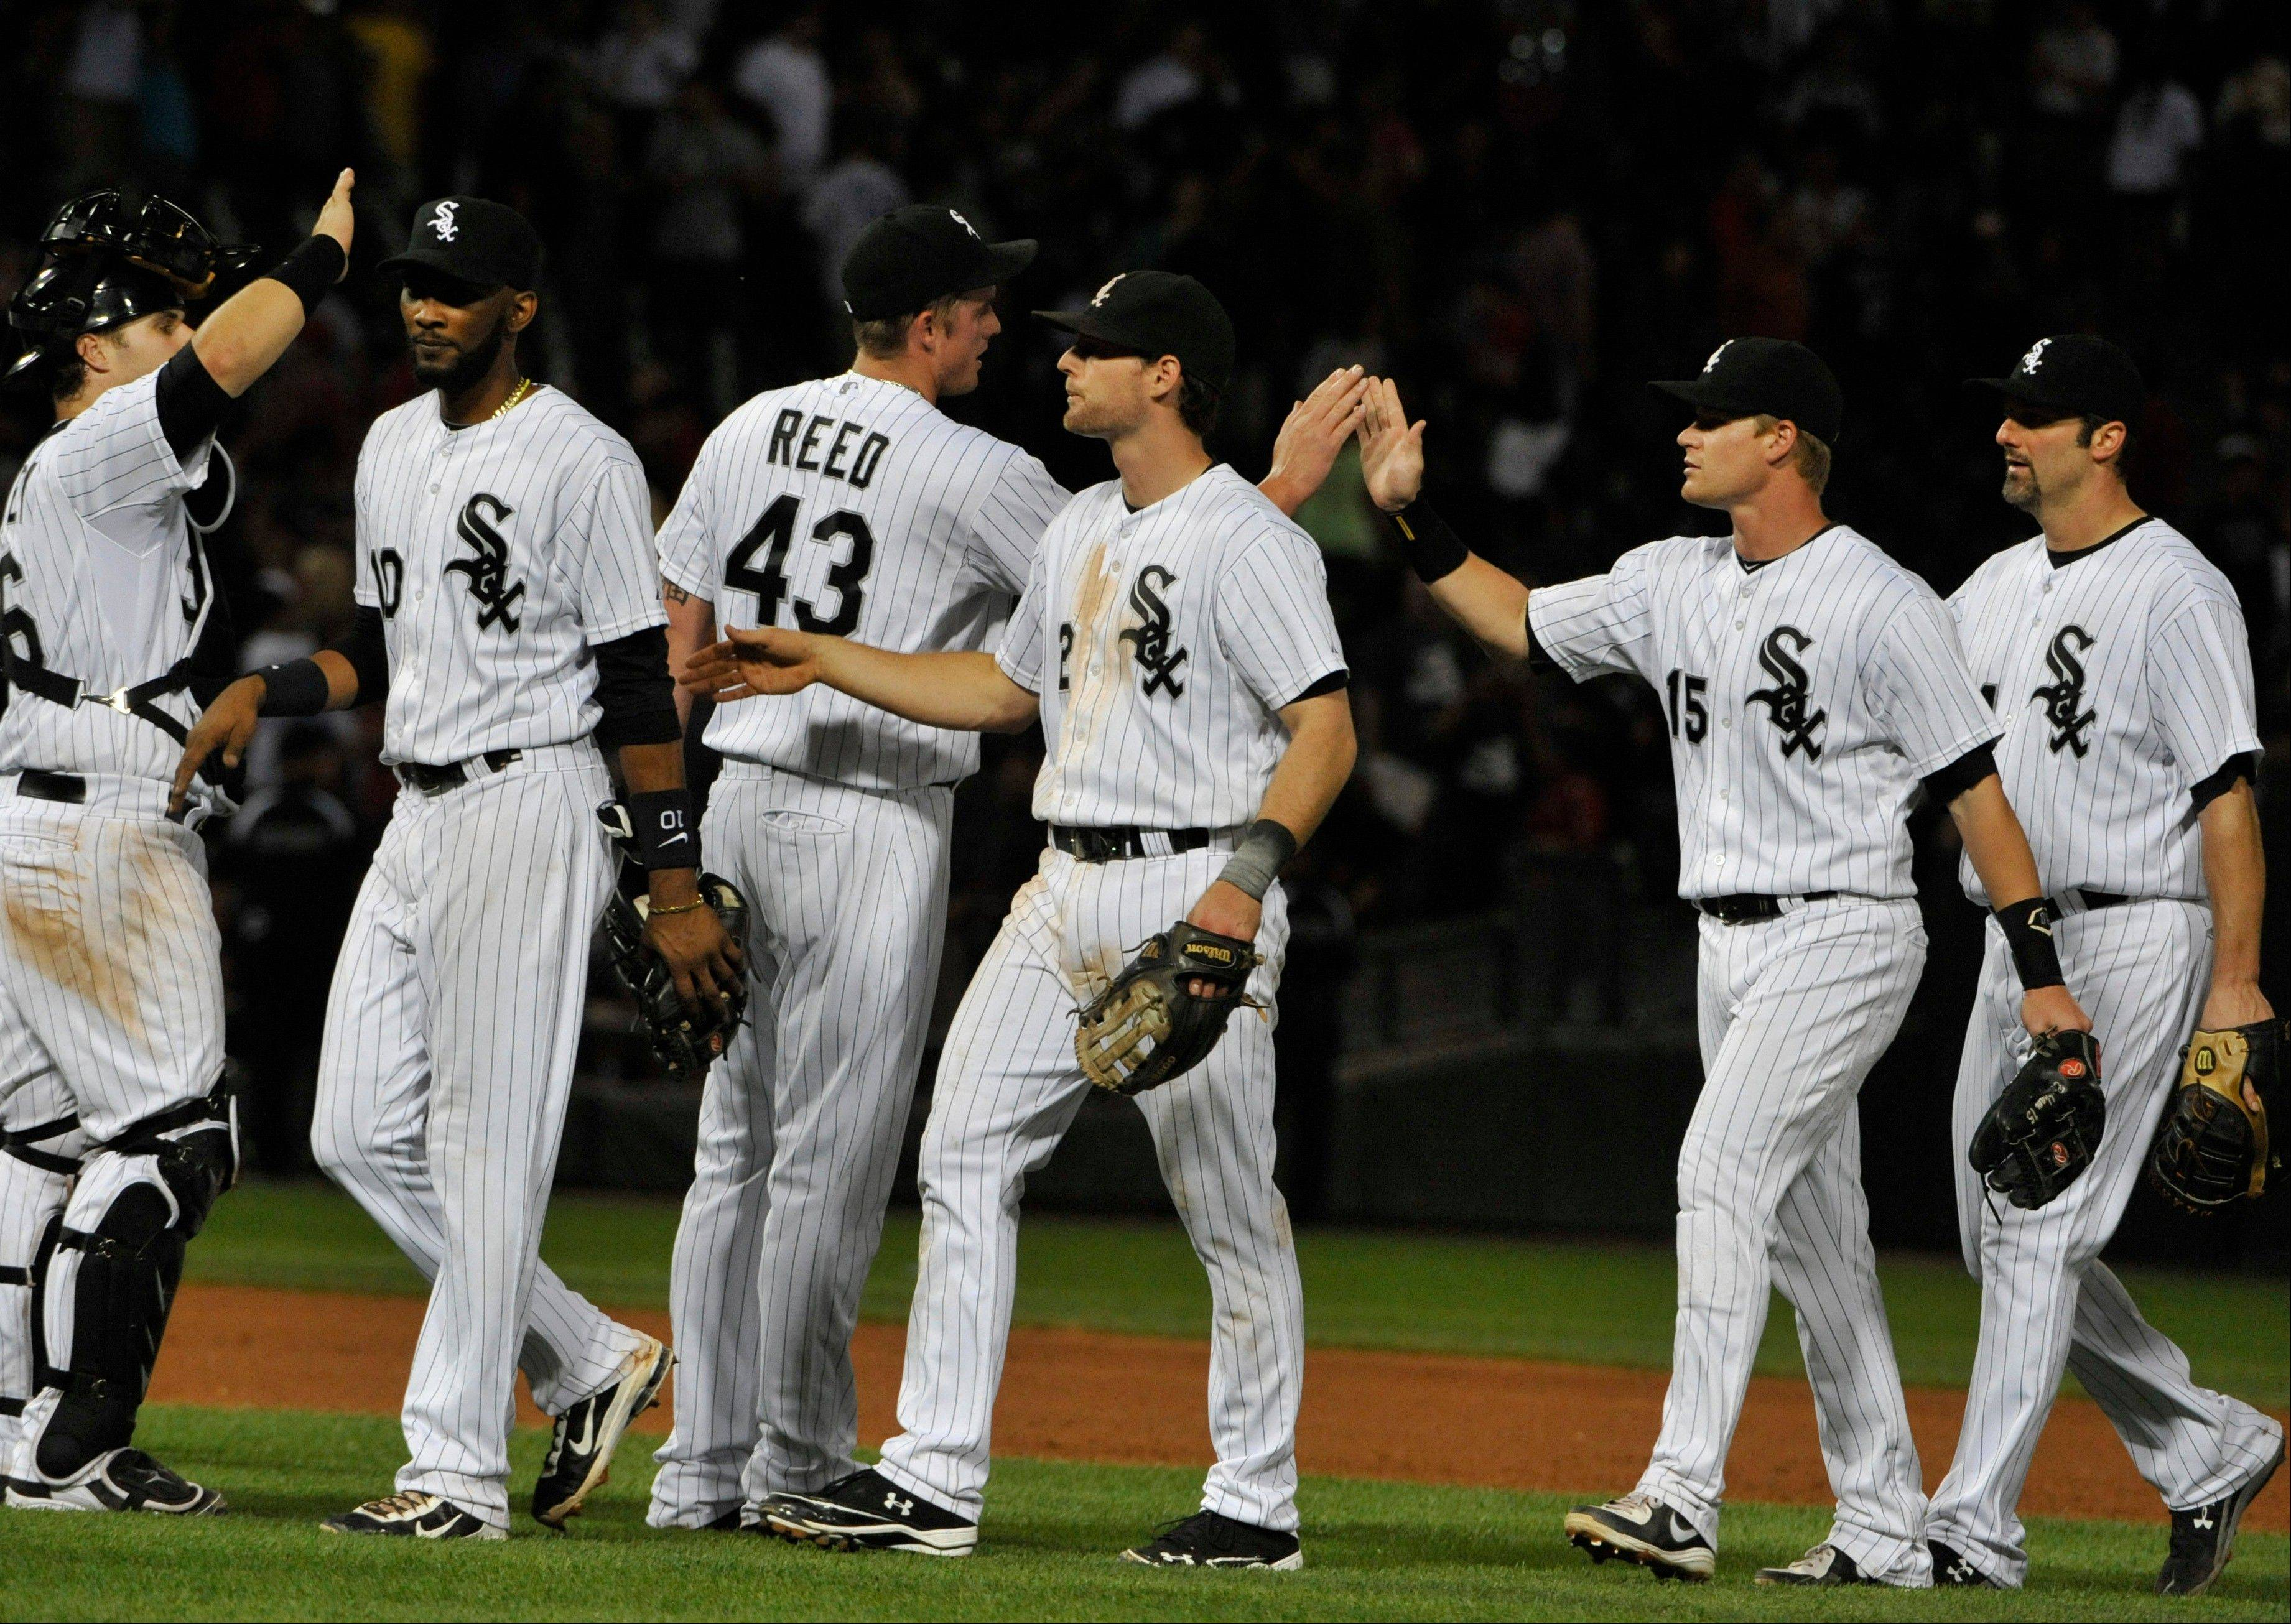 The Chicago White Sox celebrate their win in over the New York Yankees in a baseball game Tuesday, Aug. 6, 2013 in Chicago. The White Sox won 3-2. (AP Photo/David Banks)